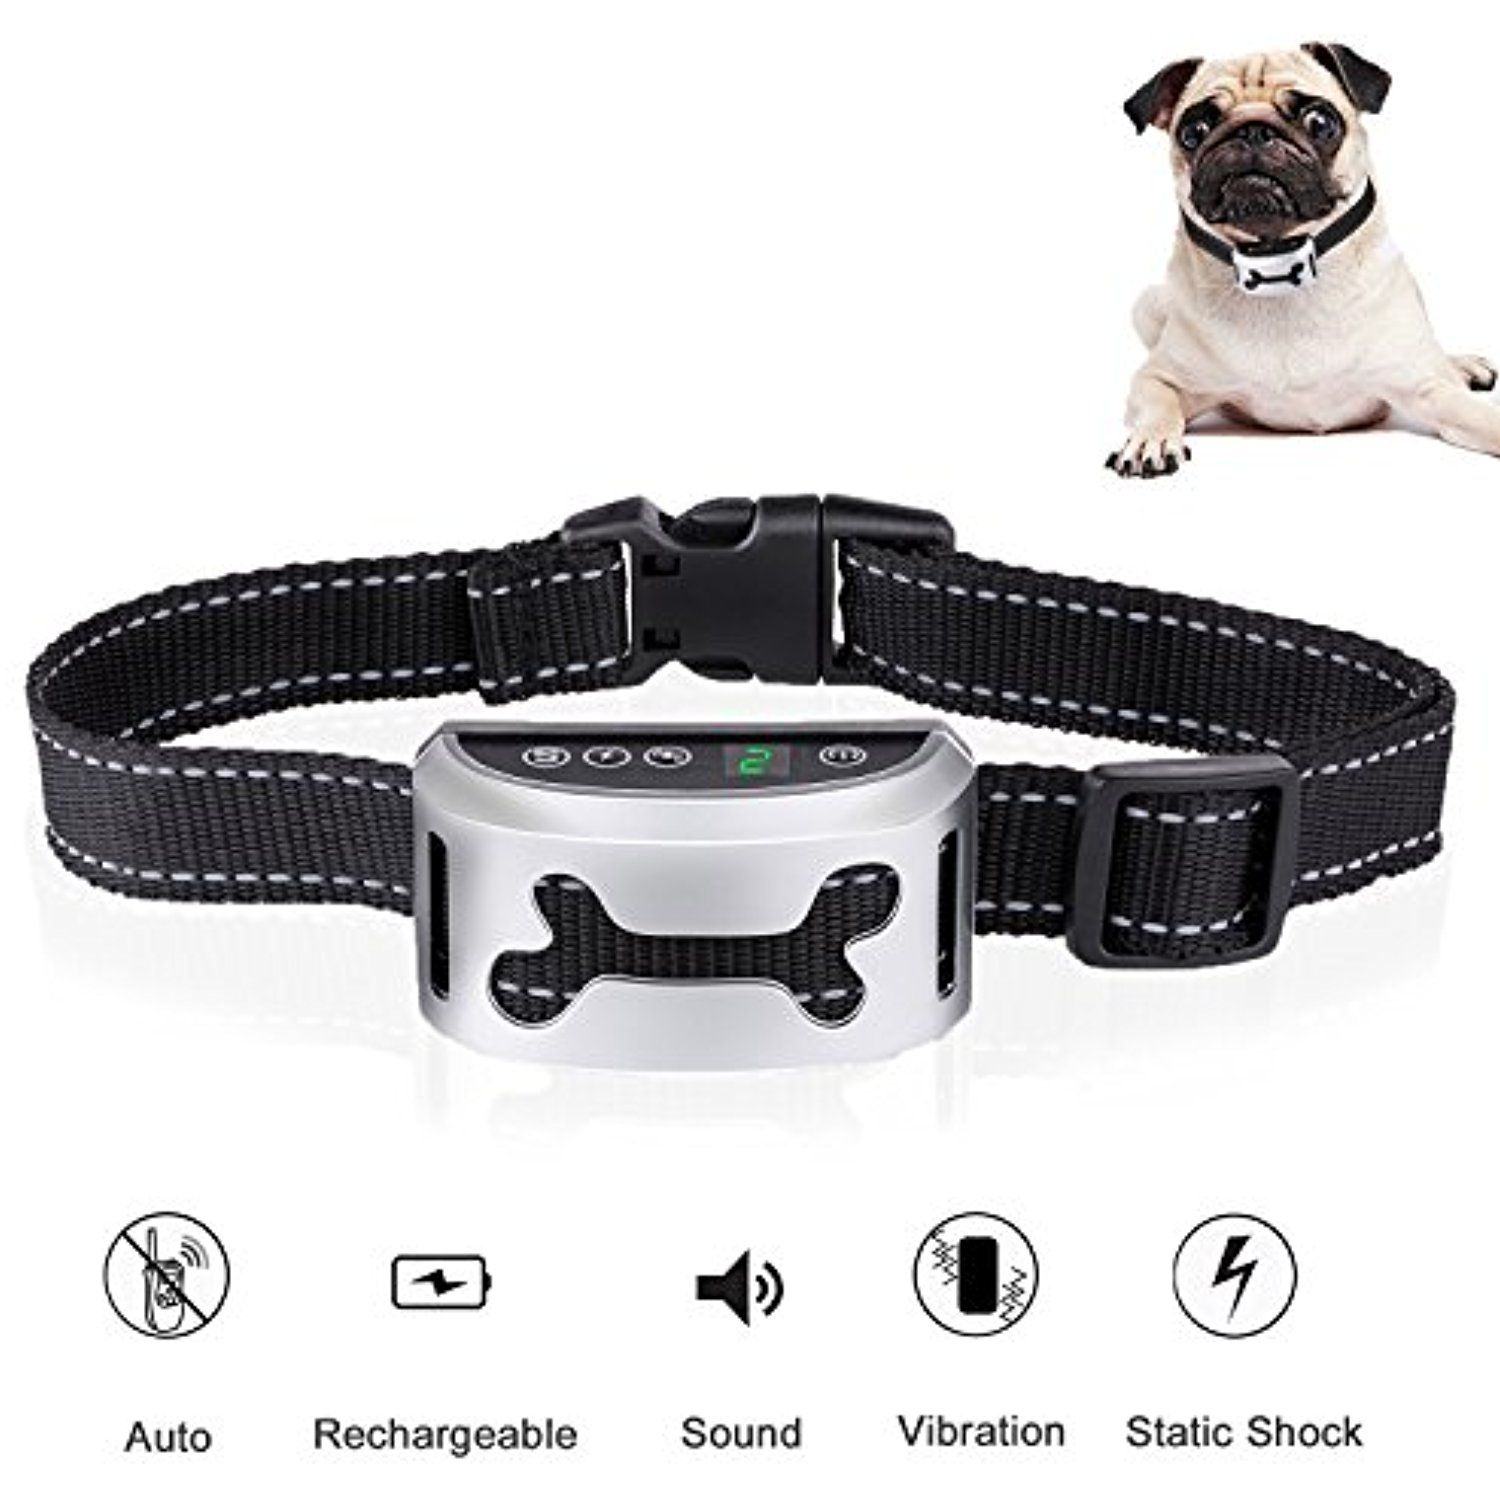 Urmates Smart Dog Training Collar Upgrade Automatic E Collar With